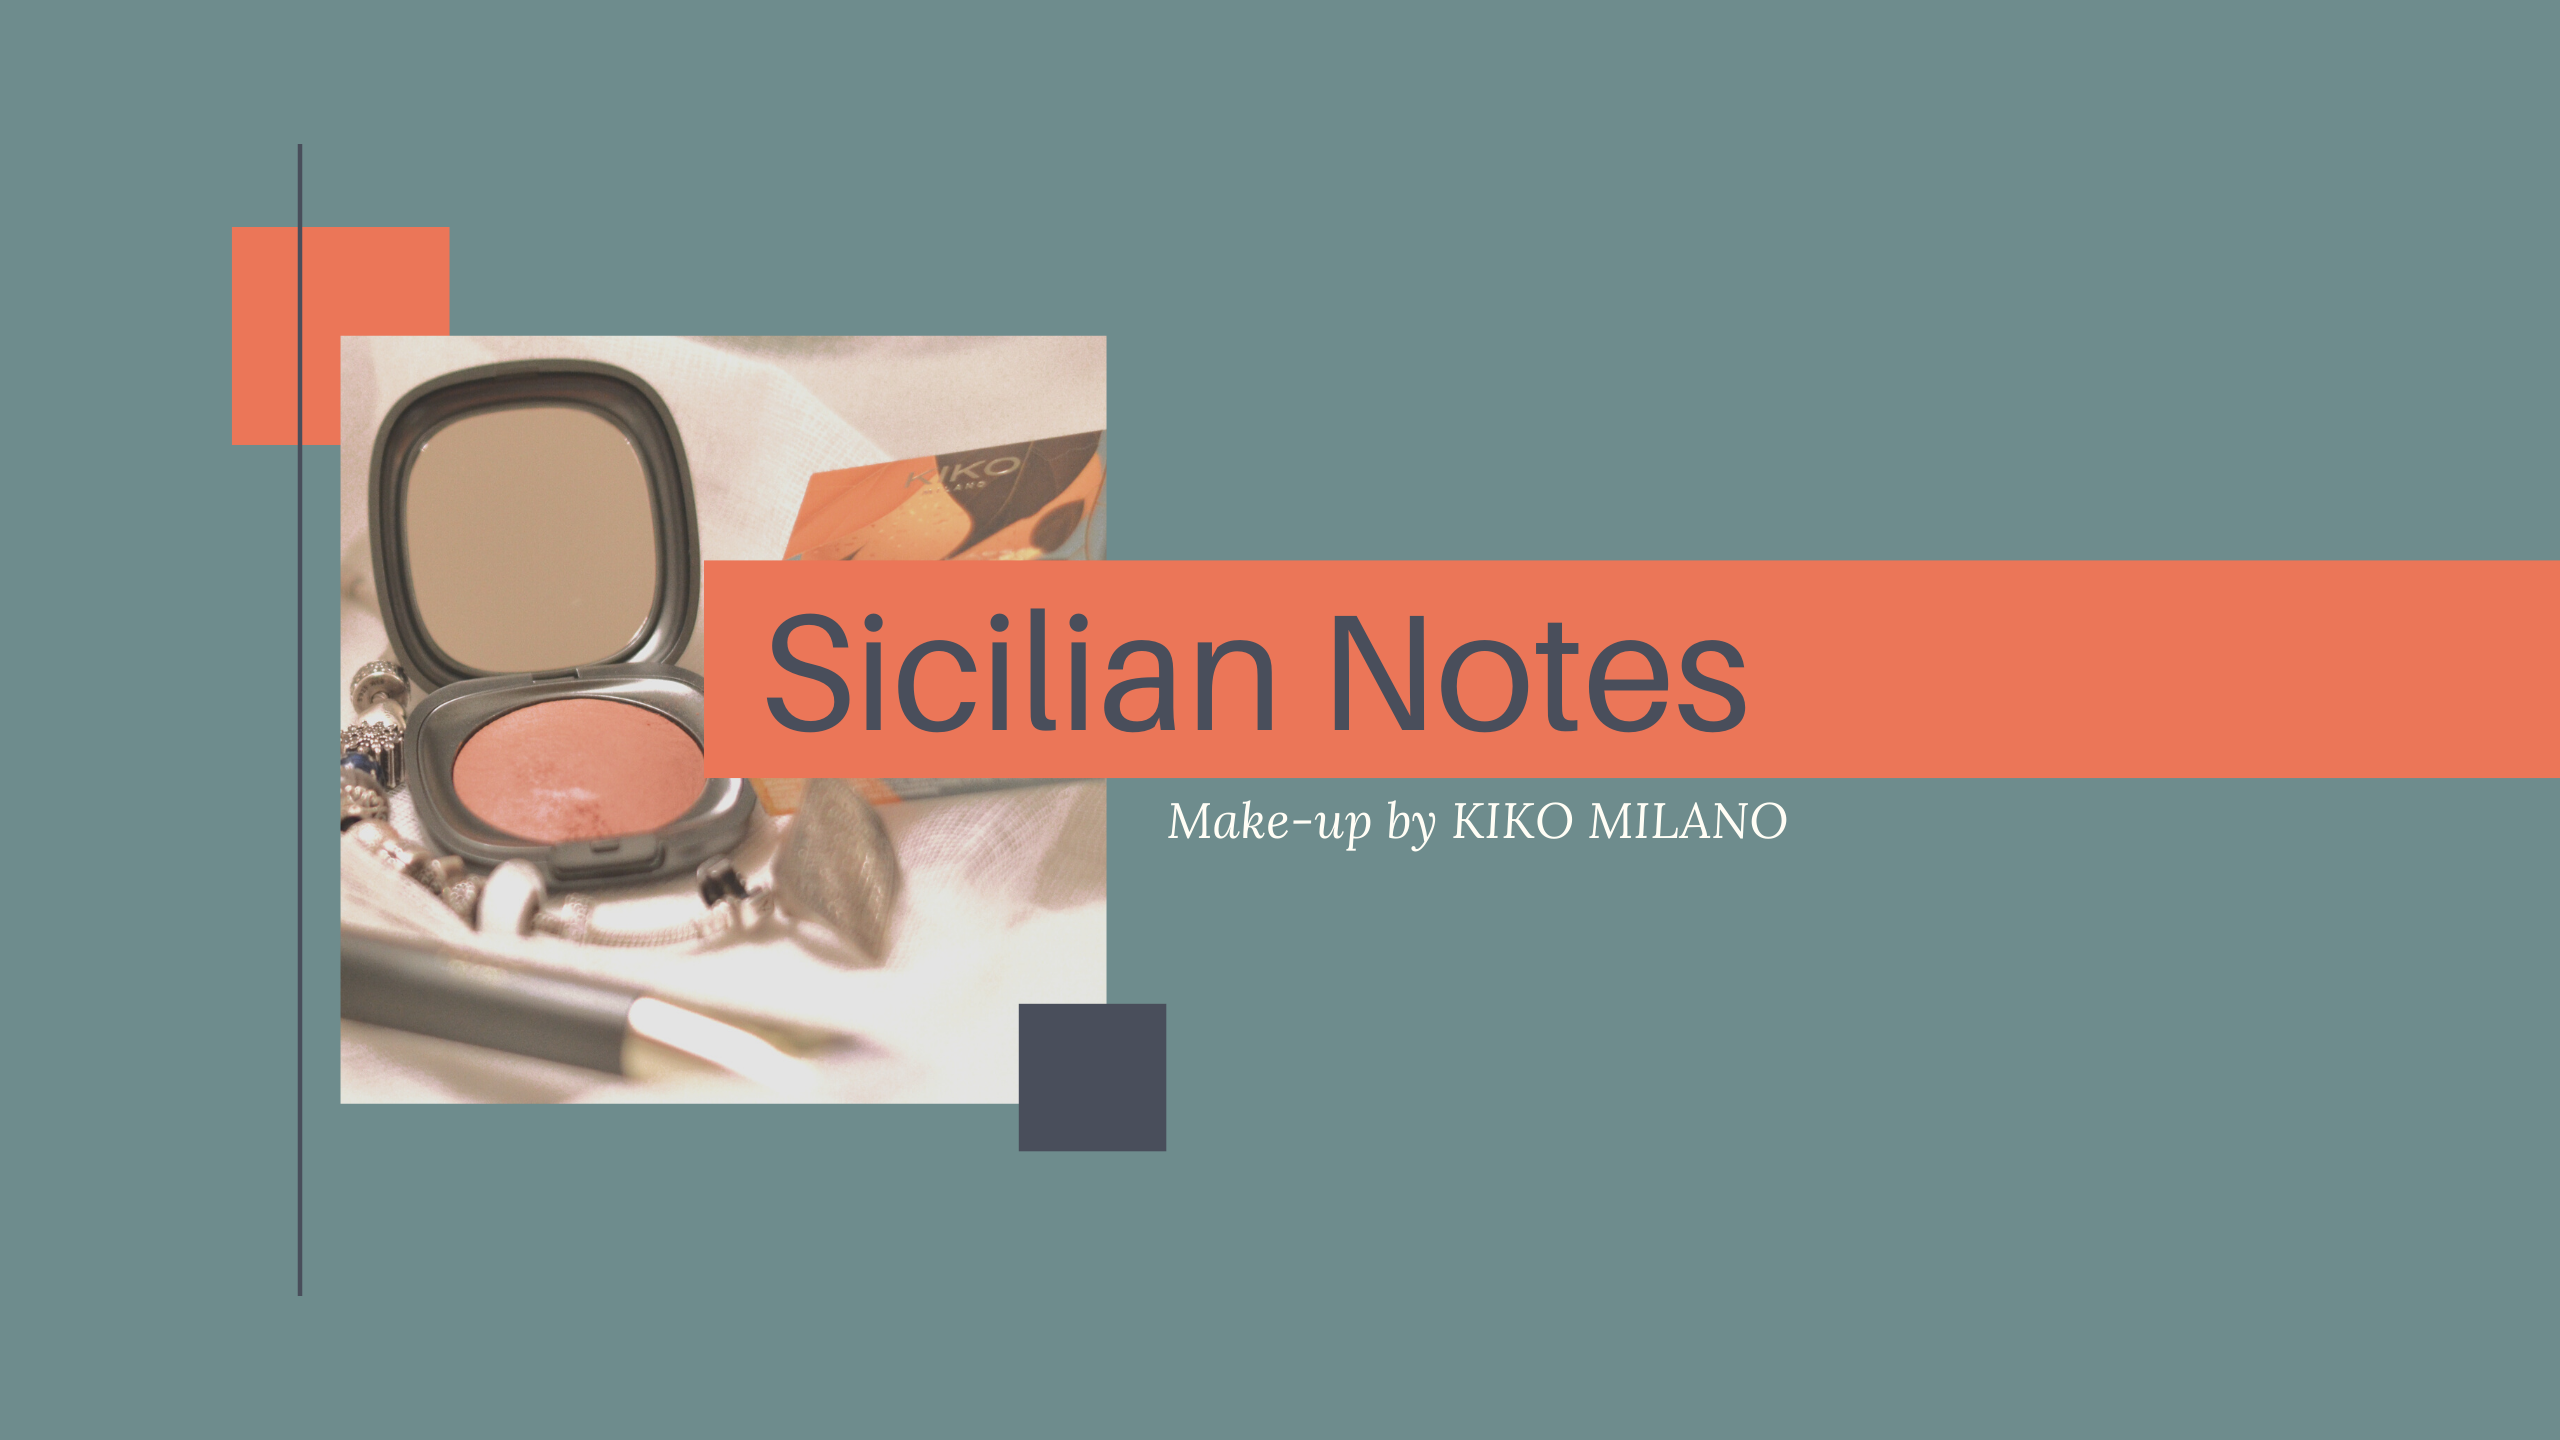 Sicilian Notes Kiko Milano